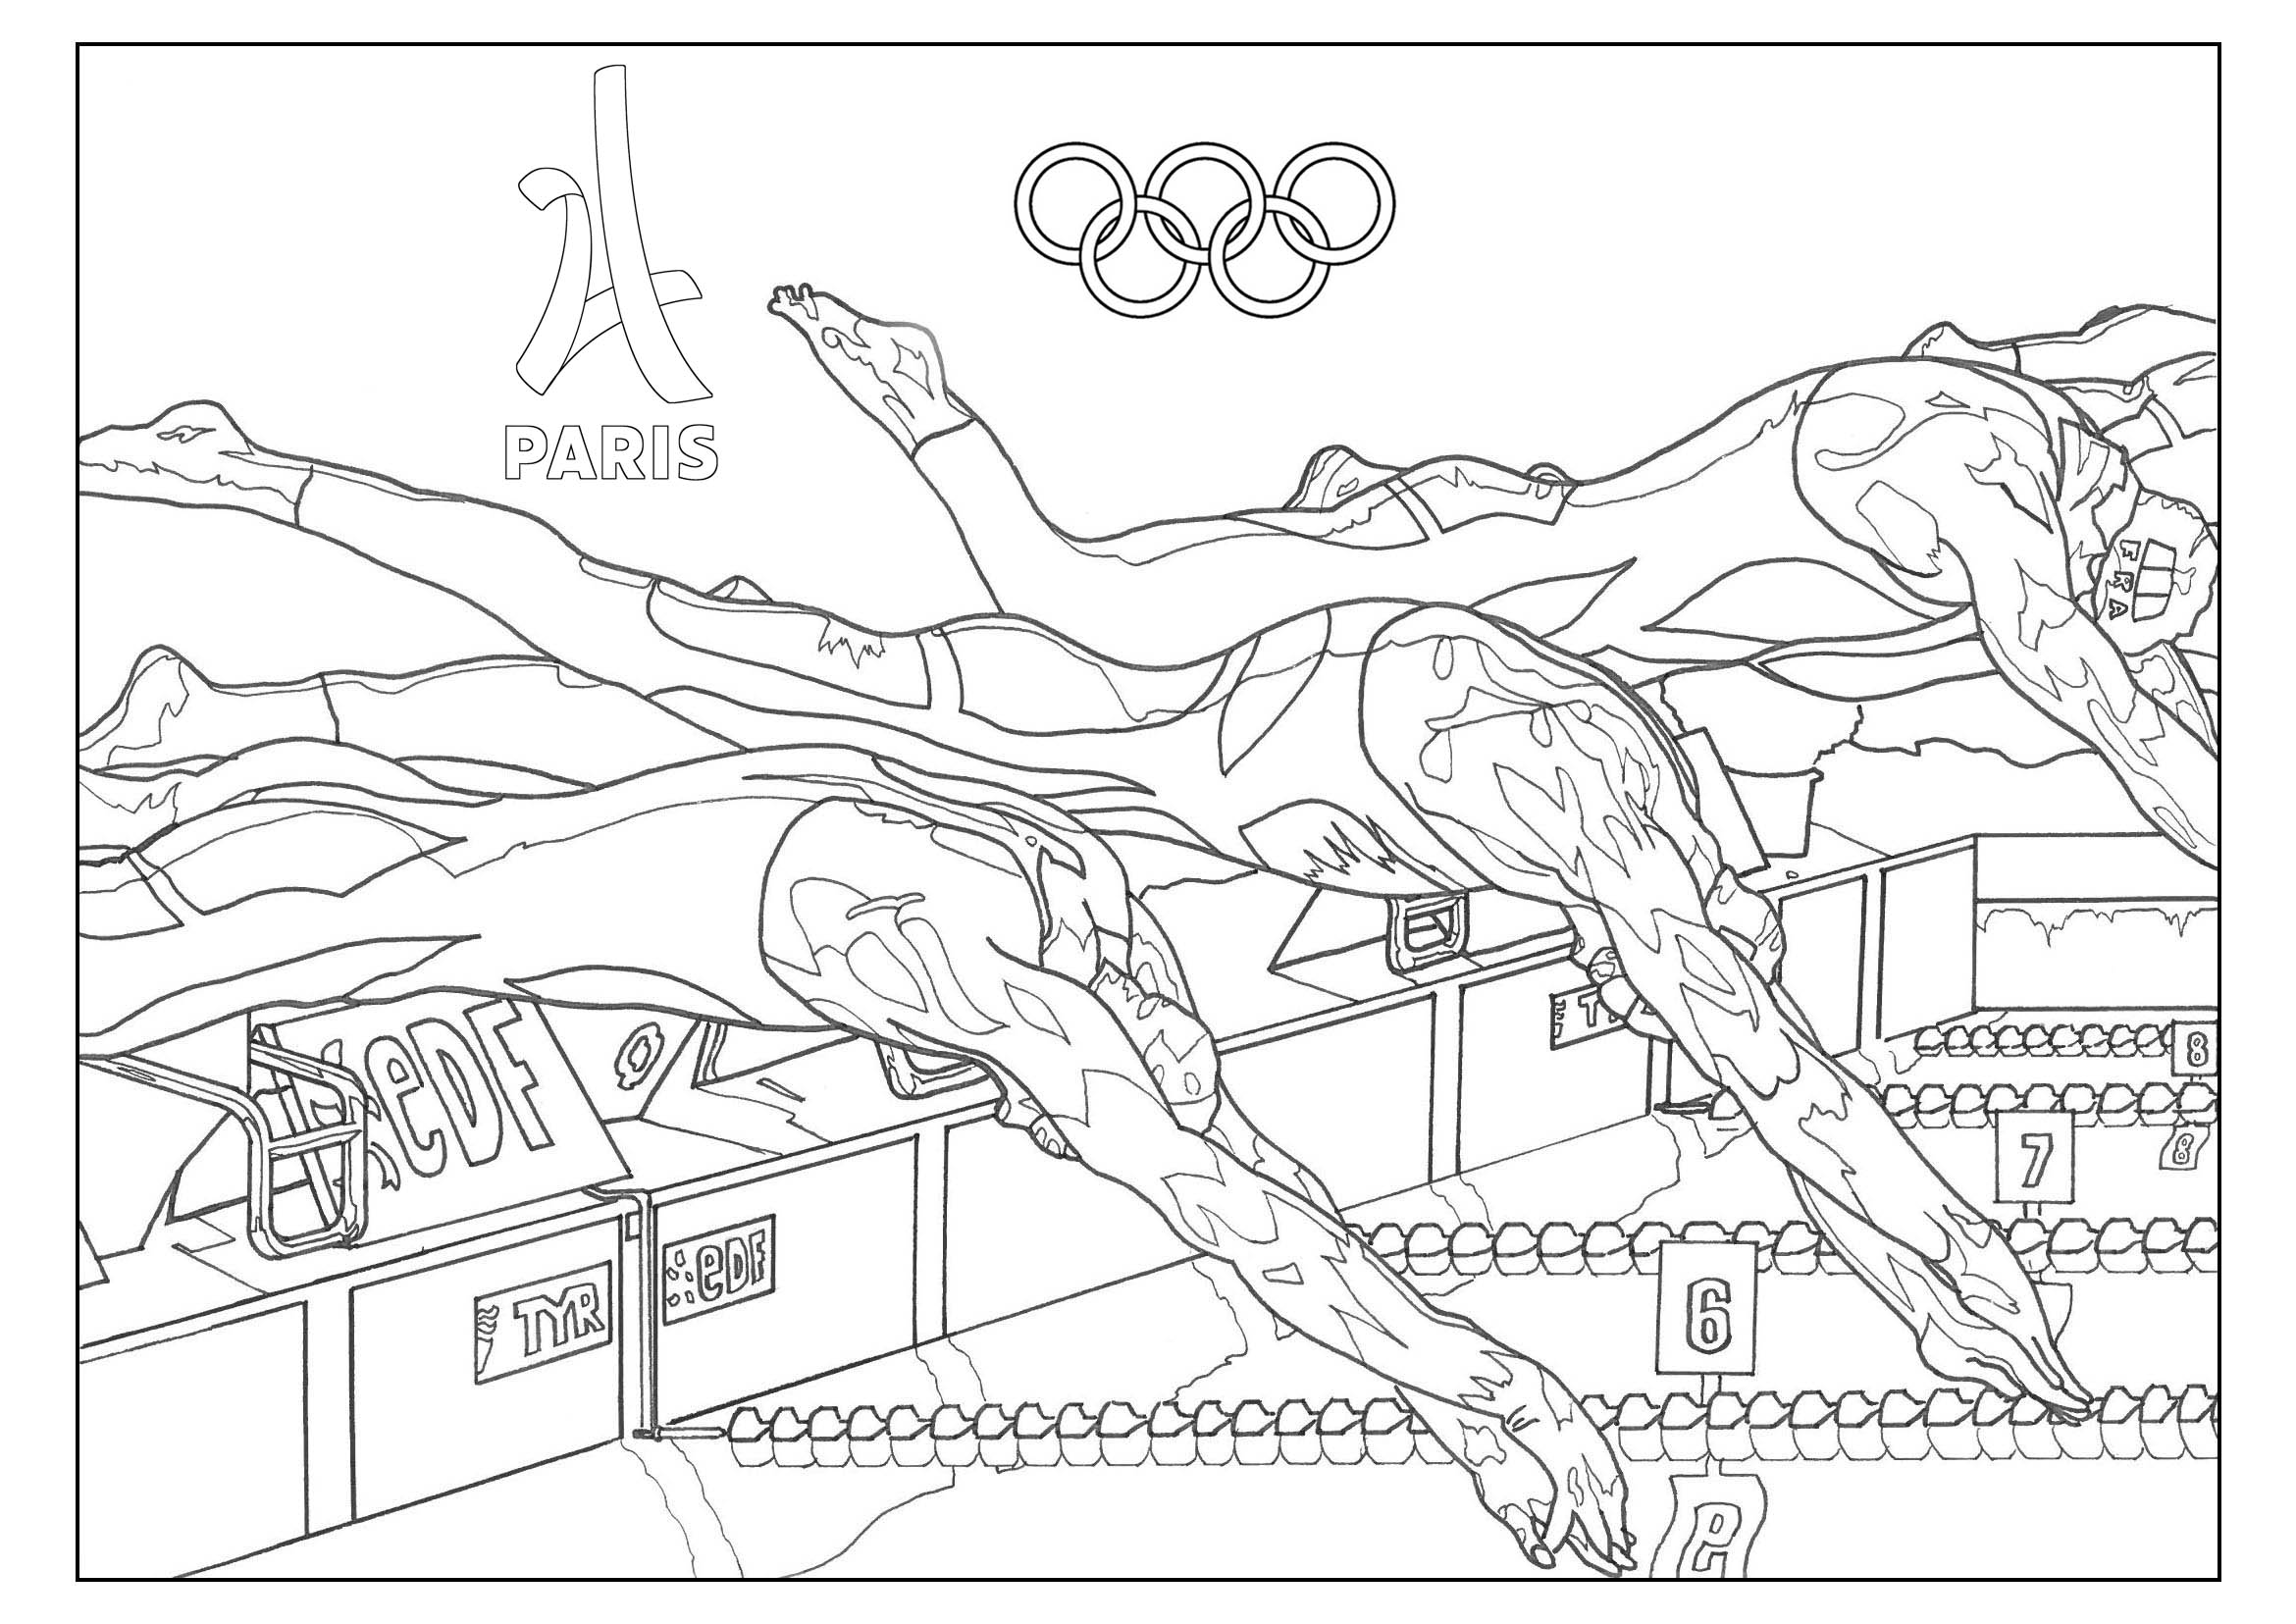 Olympic Games Swimming Paris 2024 Olympic Sport Adult Coloring